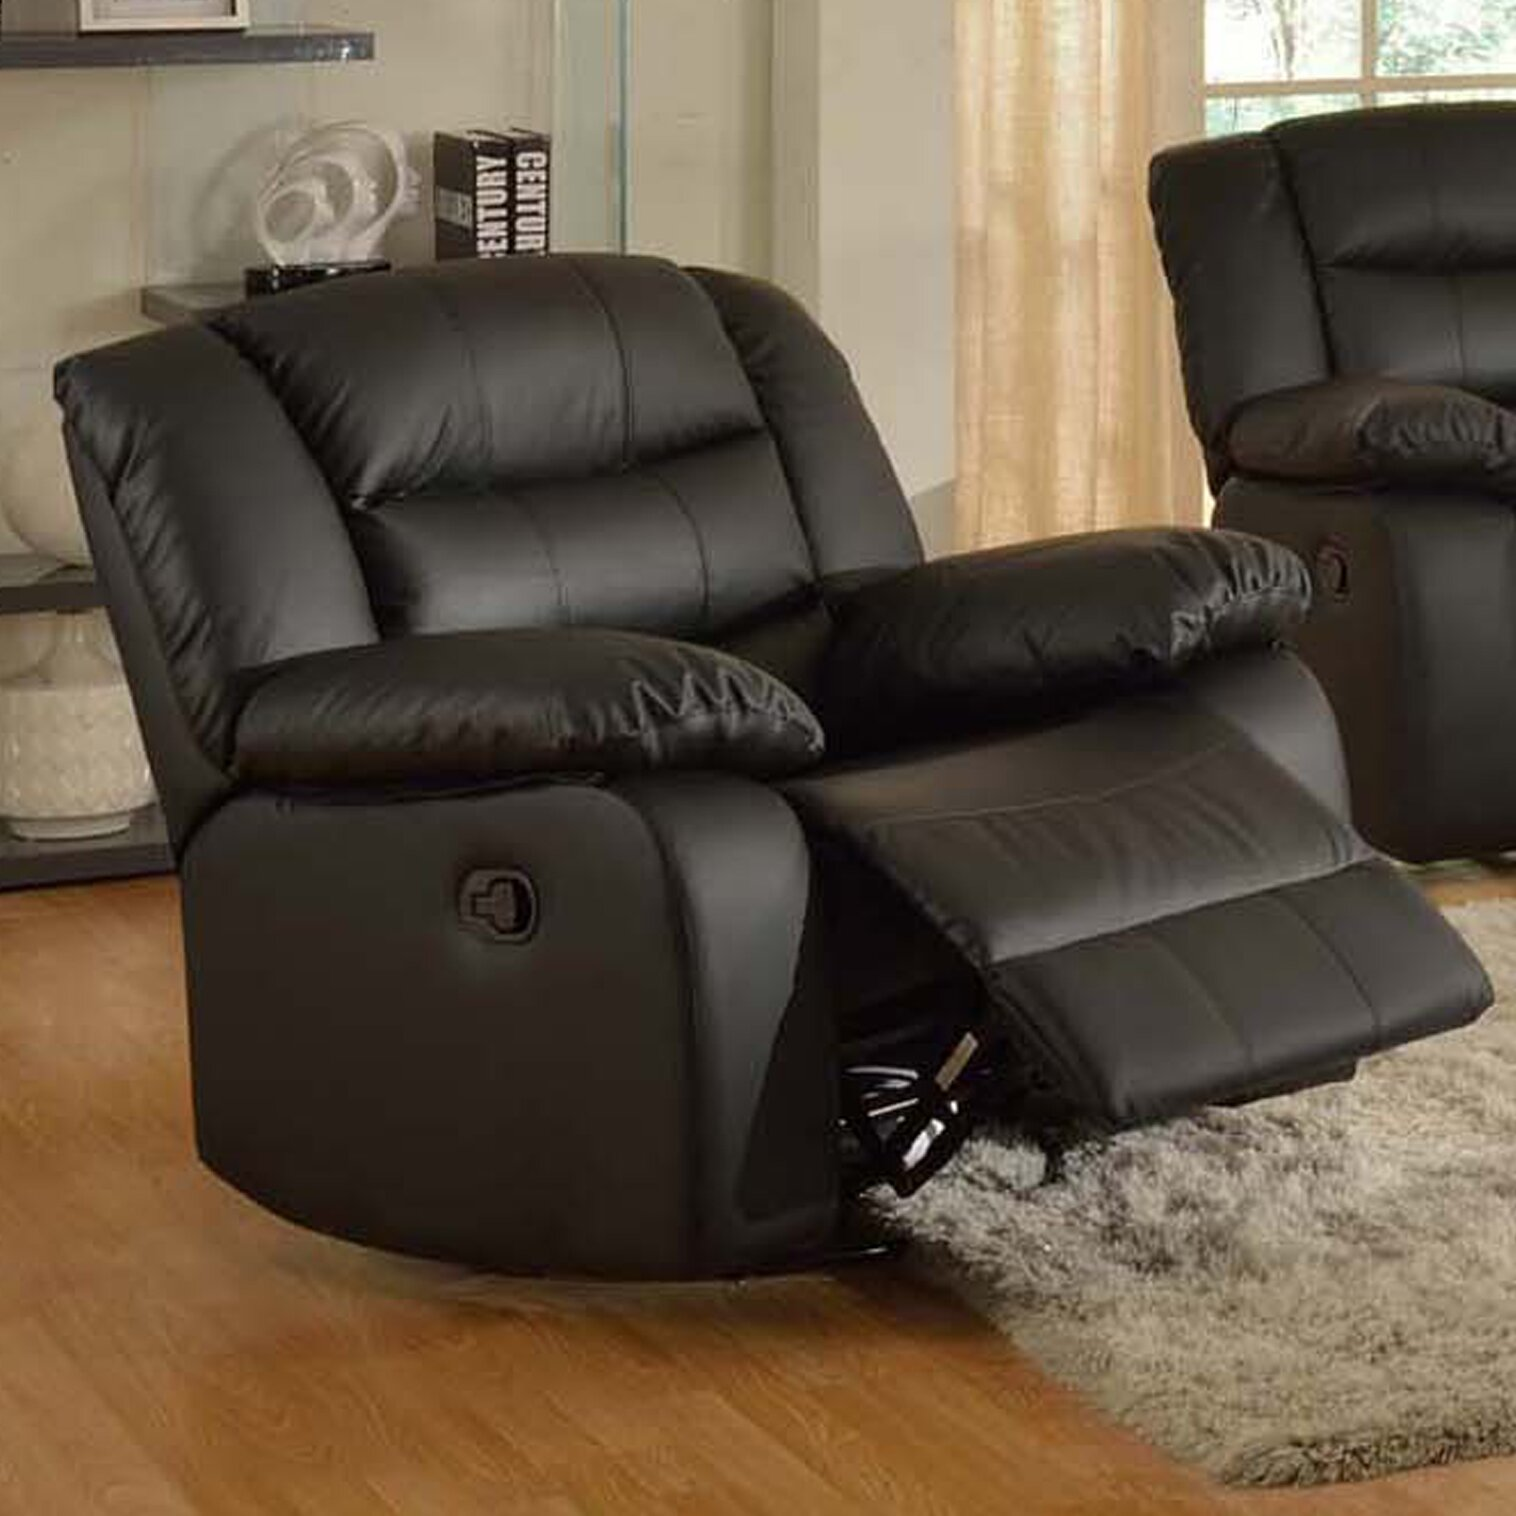 Living in style casta modern swivel rocking recliner reviews wayfair - Stylish rocker recliner ...